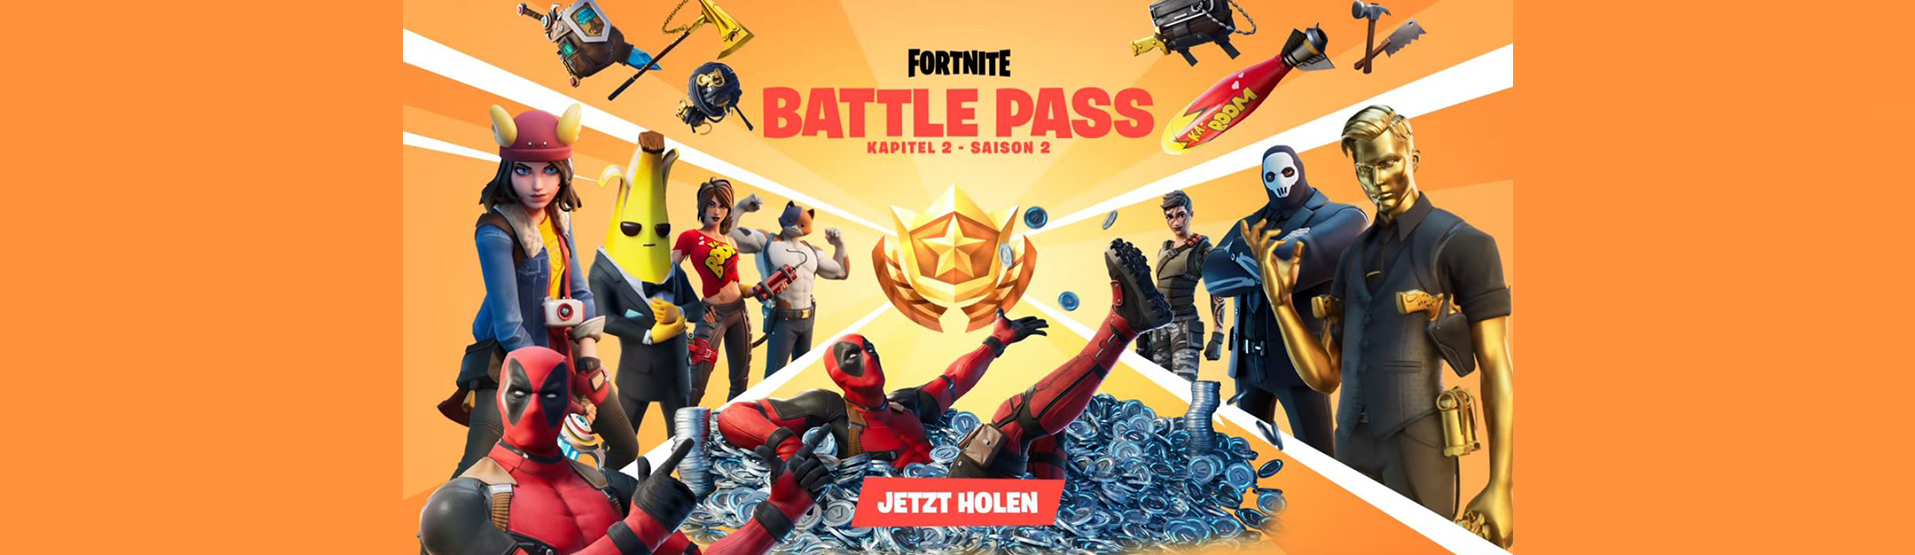 fortnite season 2 battle pass